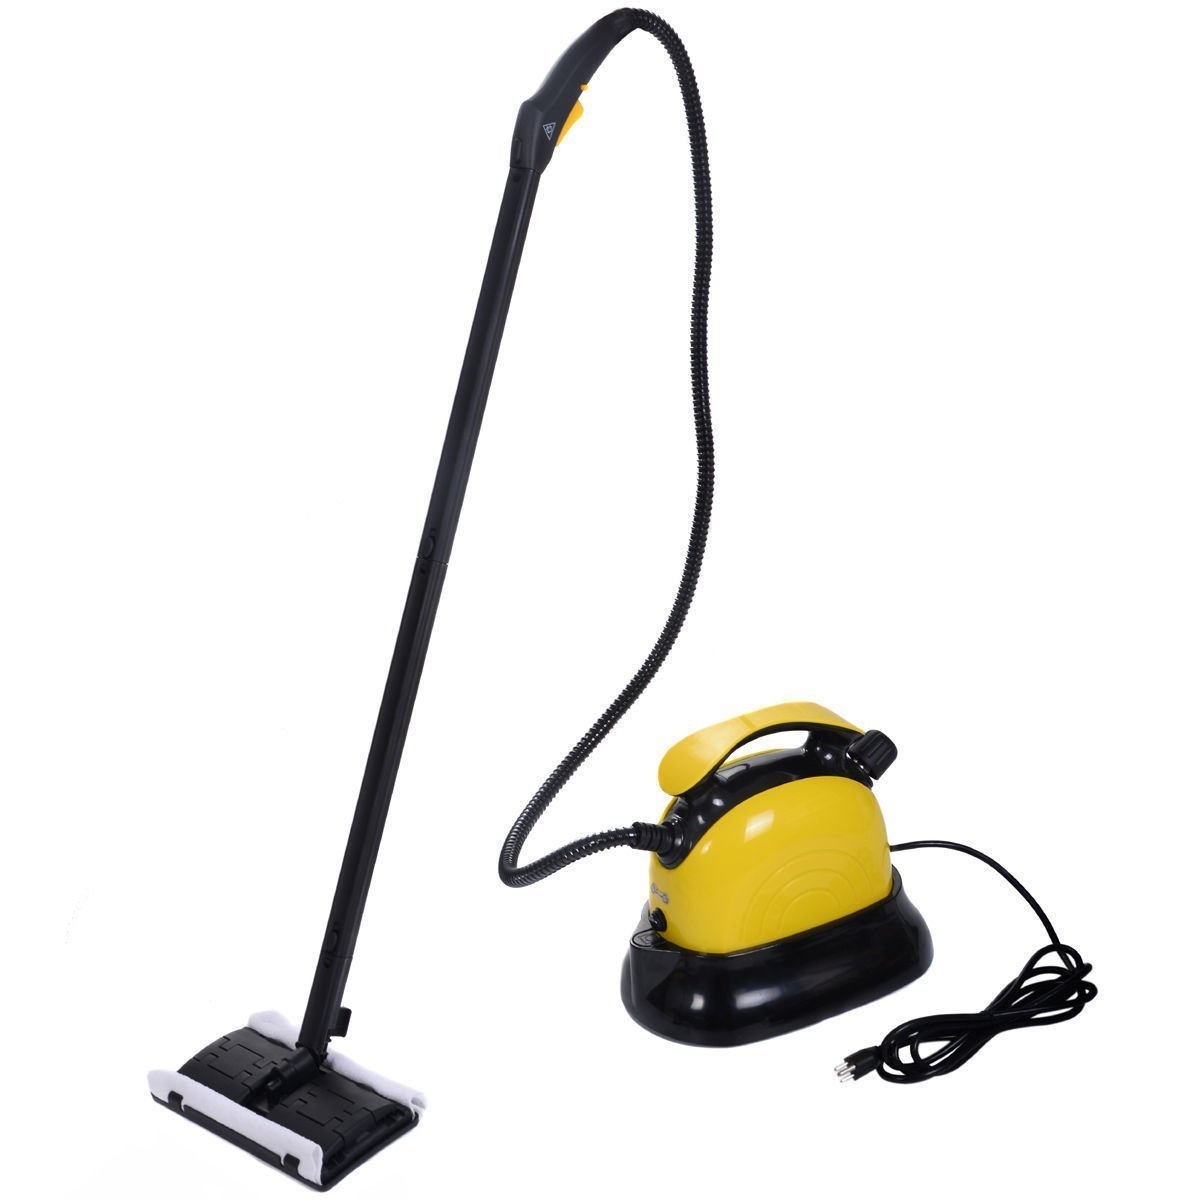 Tobbi household steam cleaners 1500W Multifunction Portable